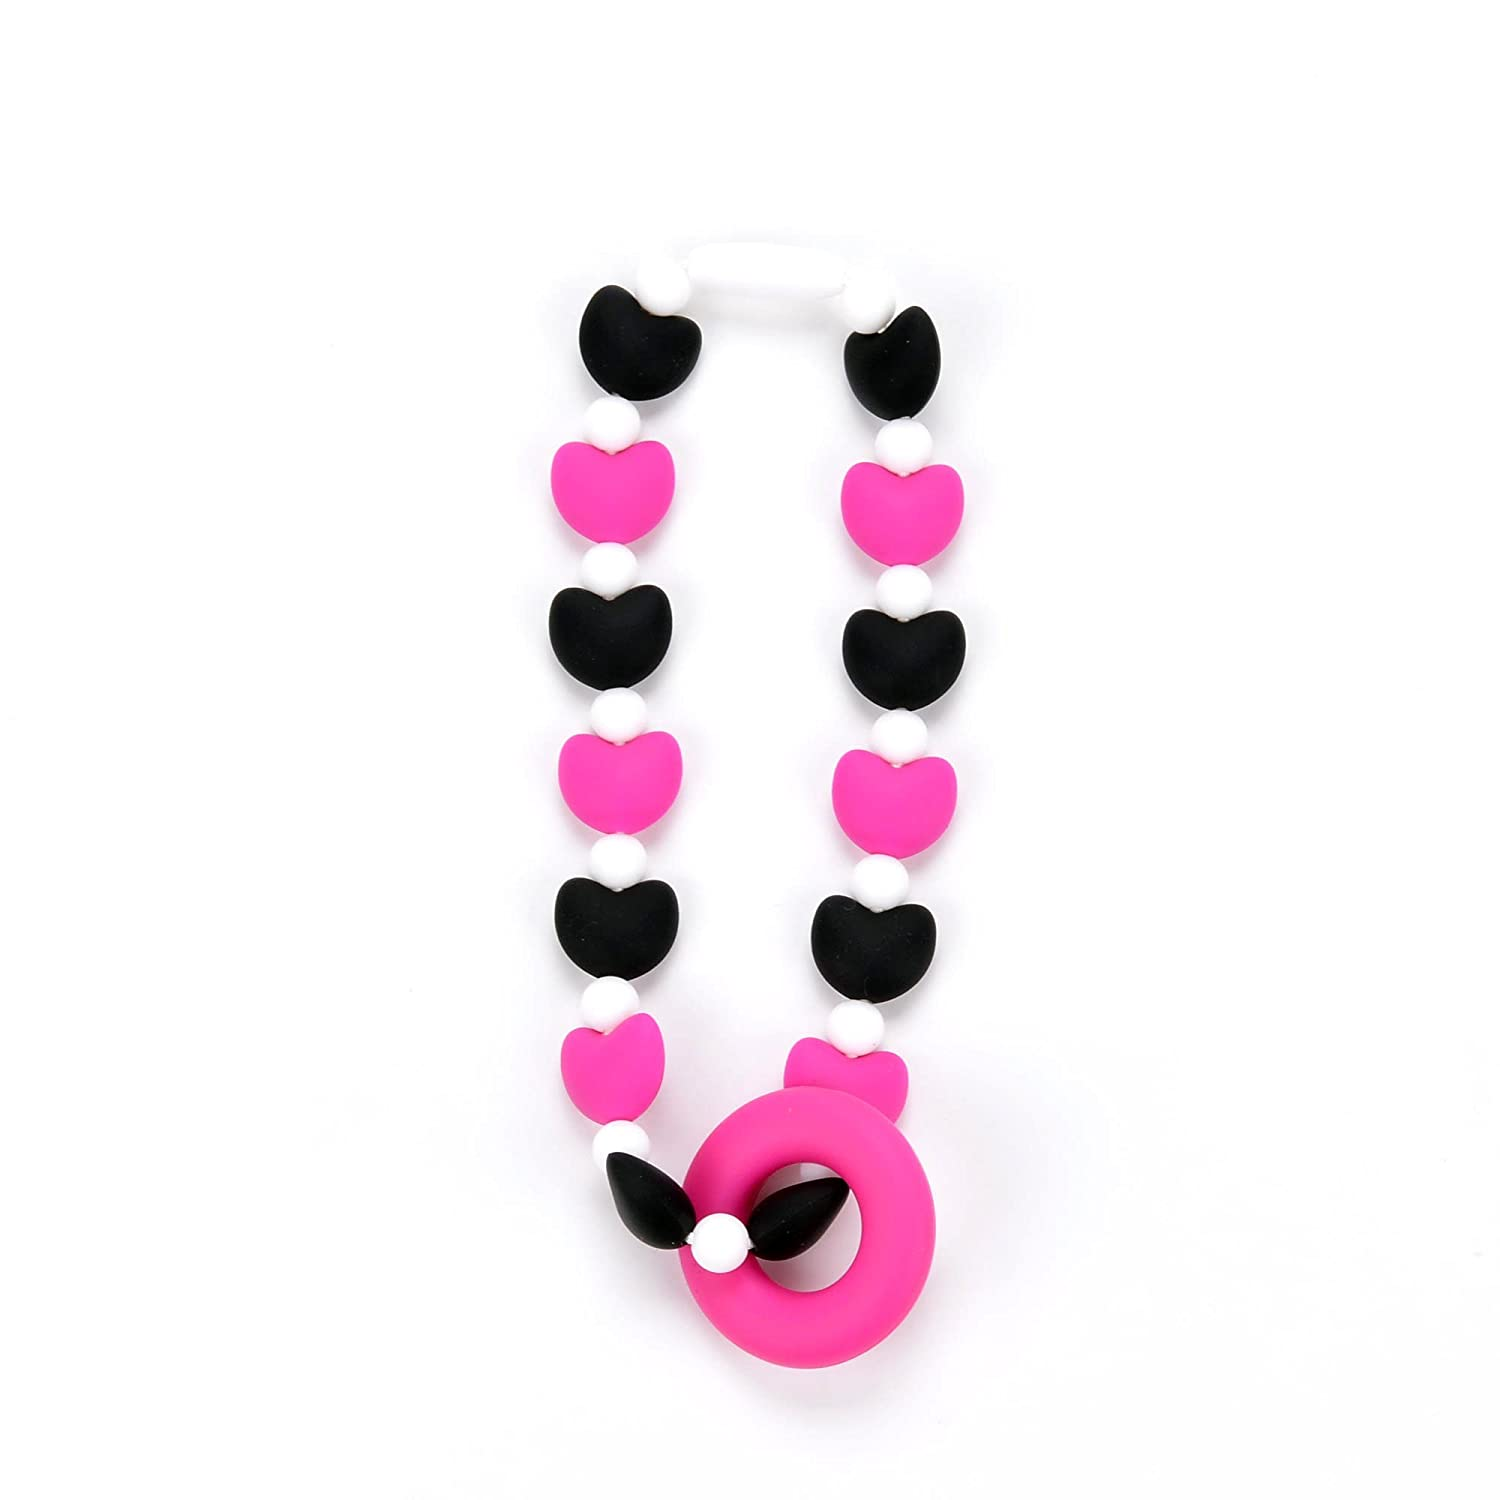 Stroller or Diaper Bag Nummy Beads Pink Hearts Teether Toy Attaches to Baby Carrier Car Seat High Chair